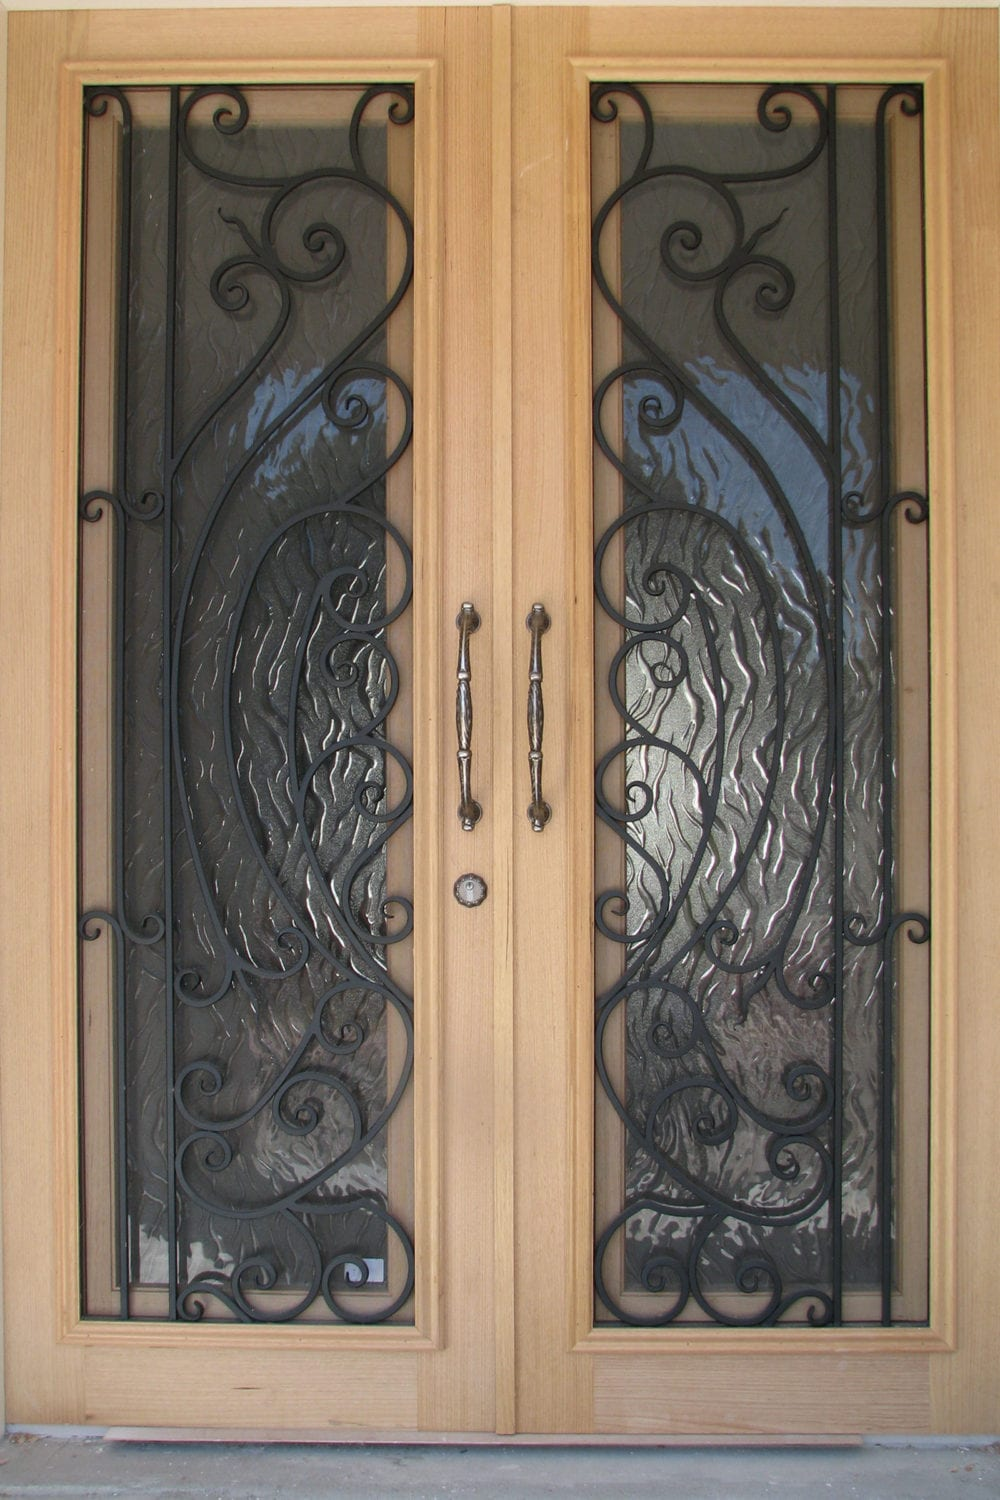 41 & Timber u0026 wrought Iron doors add beauty elegance u0026 security to your home